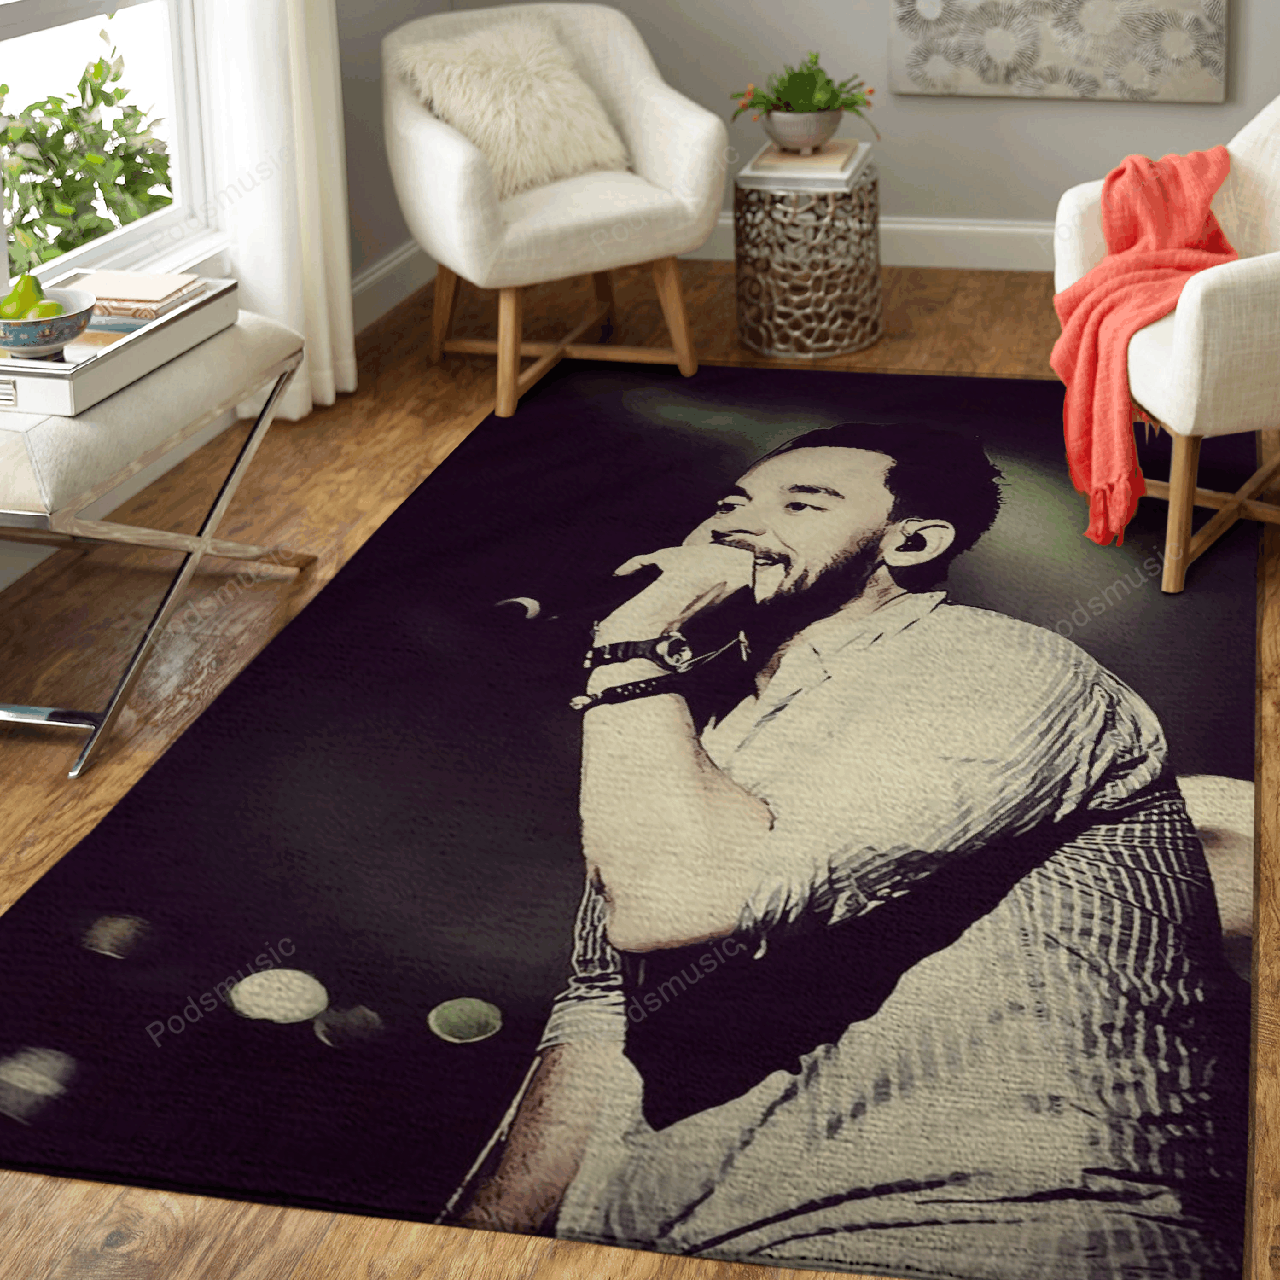 Linkin Park 249 - Music Art For Fans Area Rug Living Room Carpet Floor Decor